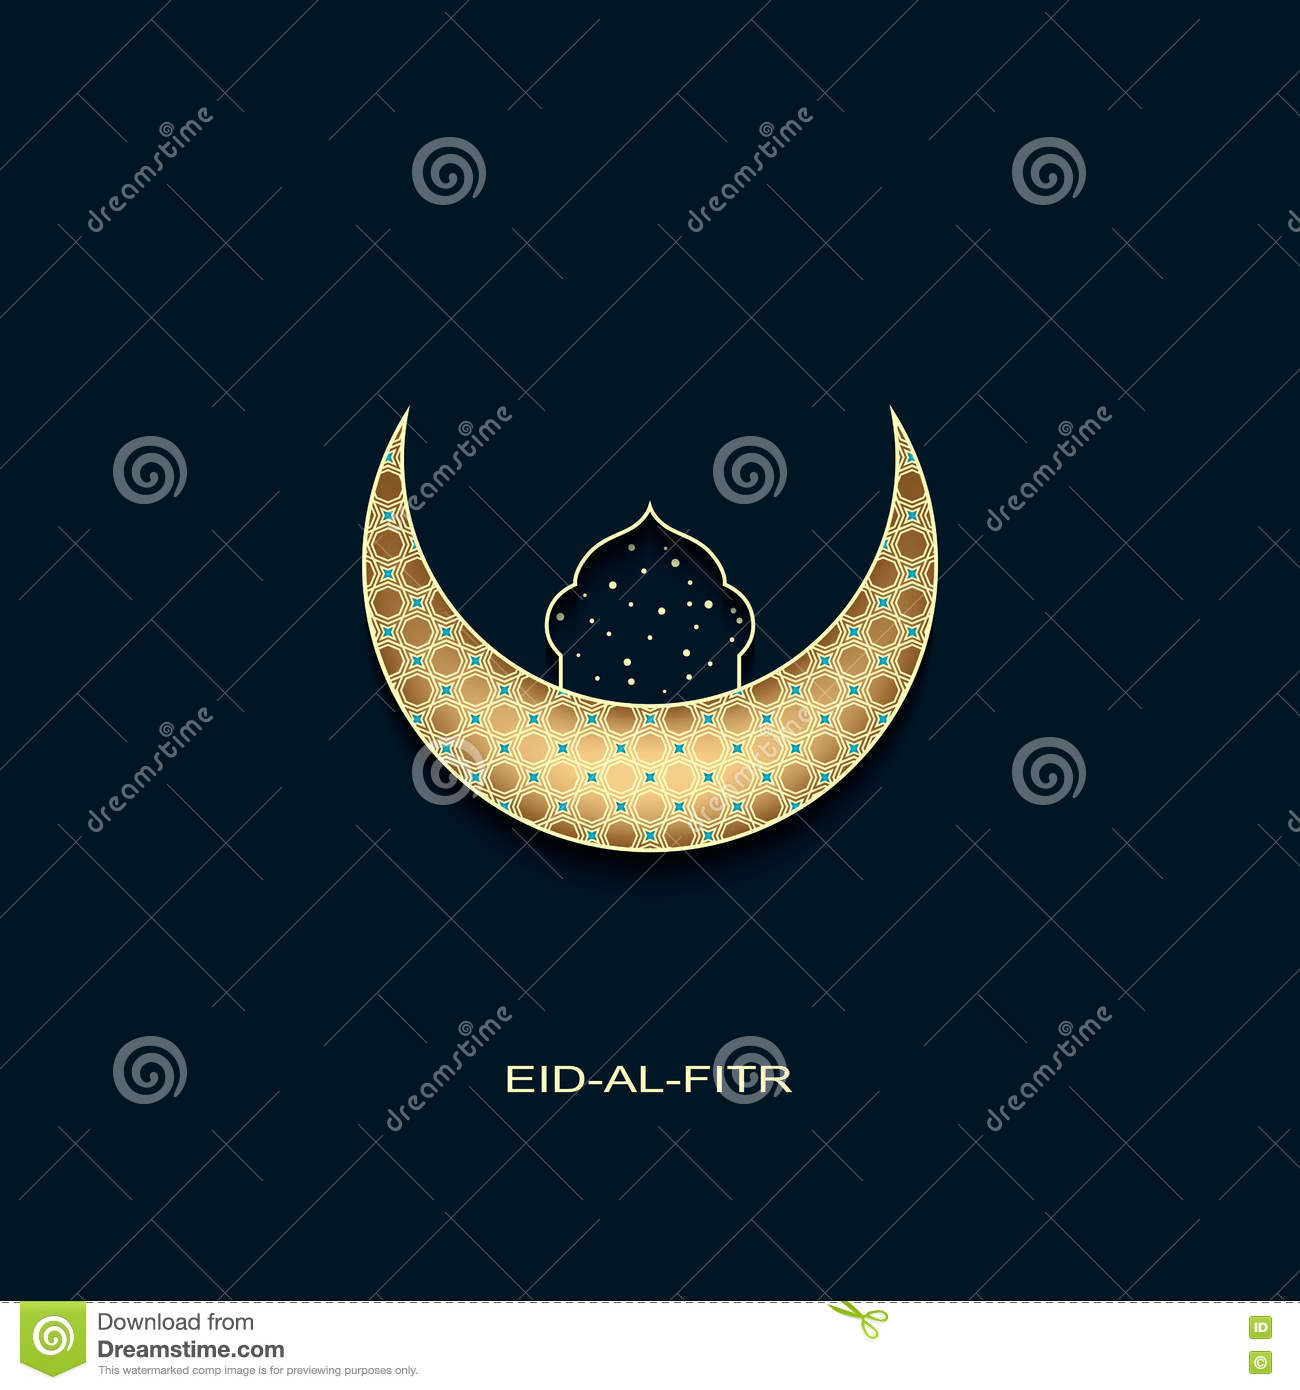 Most Inspiring Moon Star Light Eid Al-Fitr Decorations - eid-al-fitr-background-golden-decorated-moon-star-mosque-vector-73018106  HD_3387 .jpg